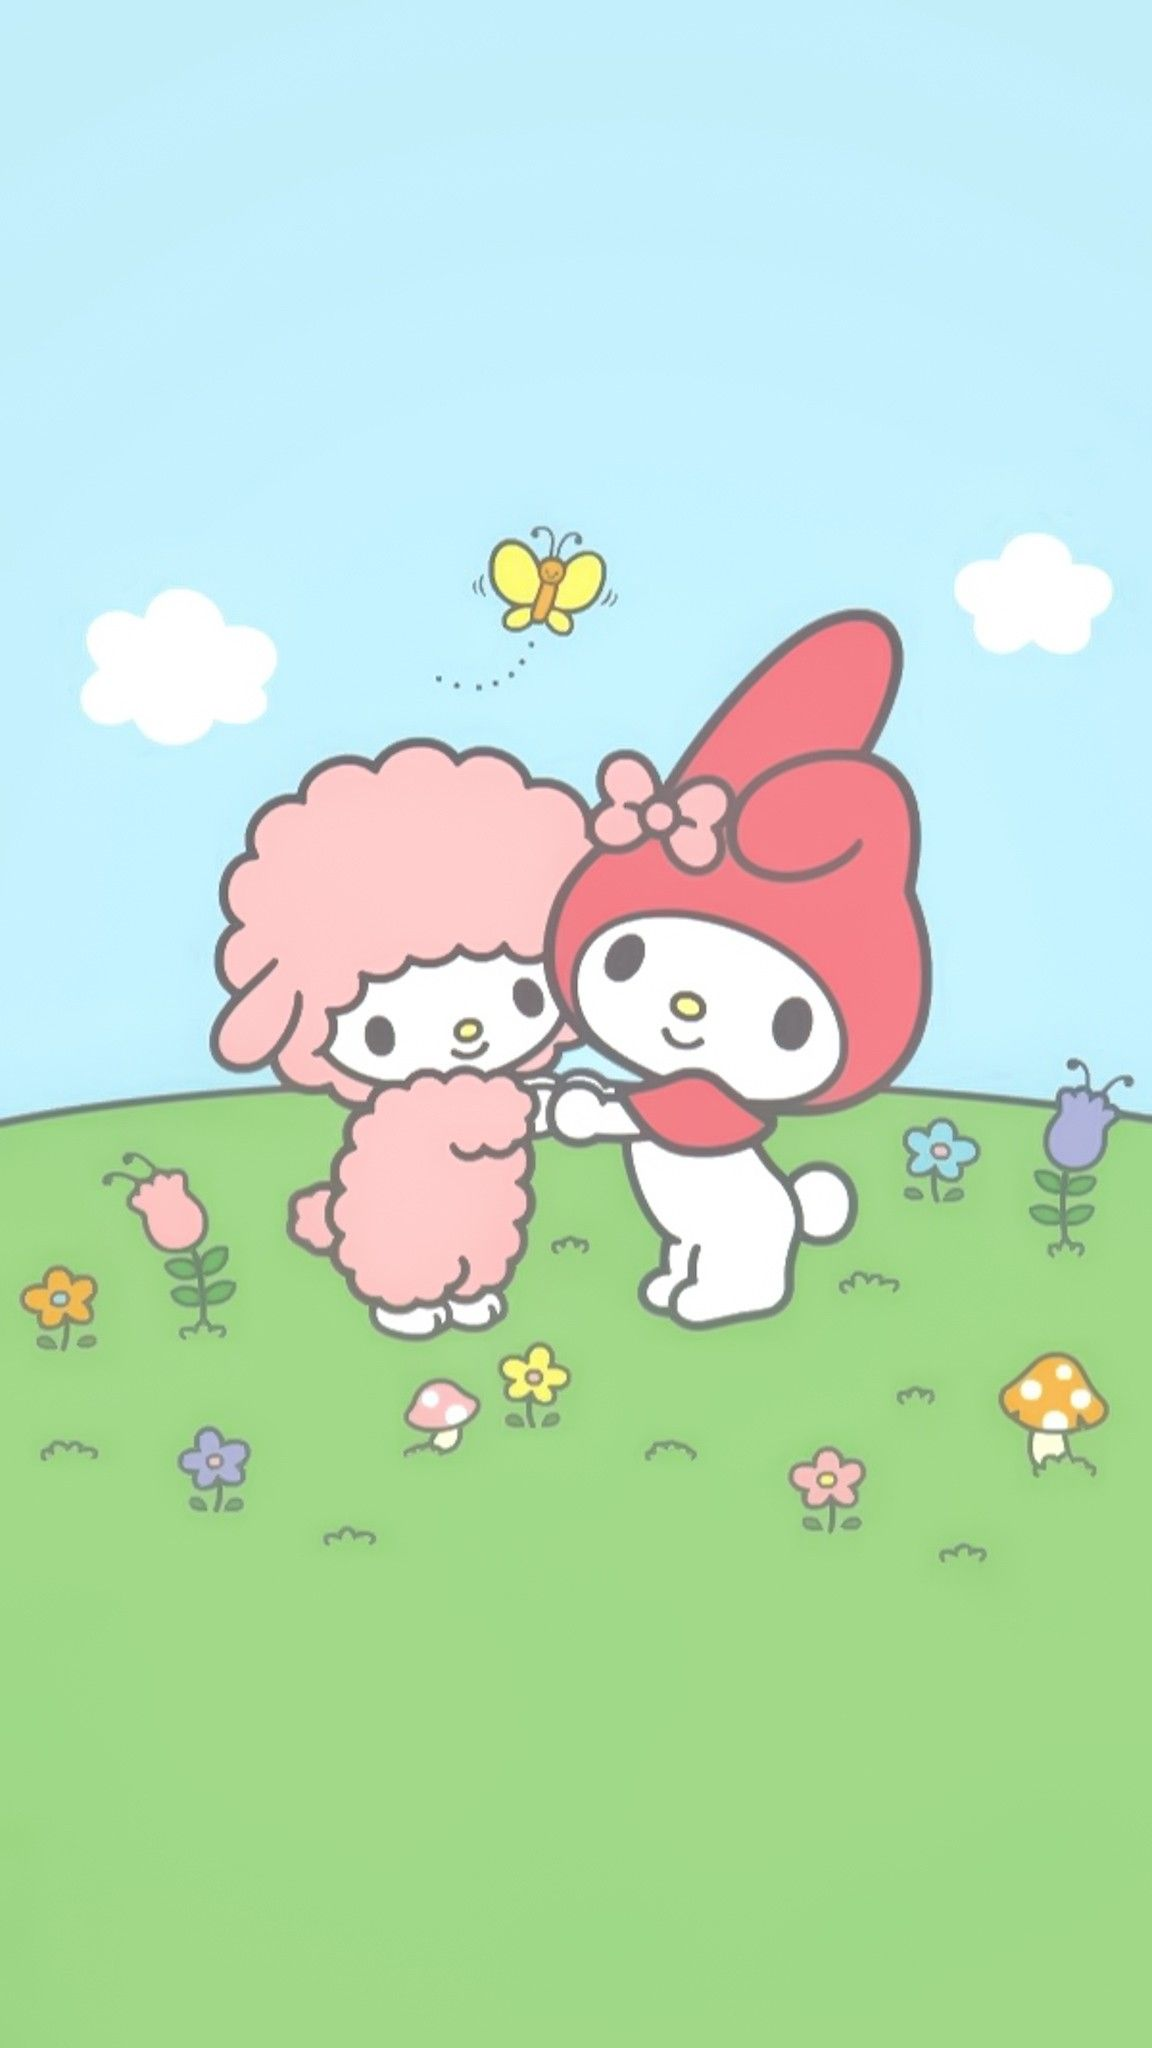 Pin by Dayna Itzel on My Melody ☆ BG2 in 2020 | My melody ...